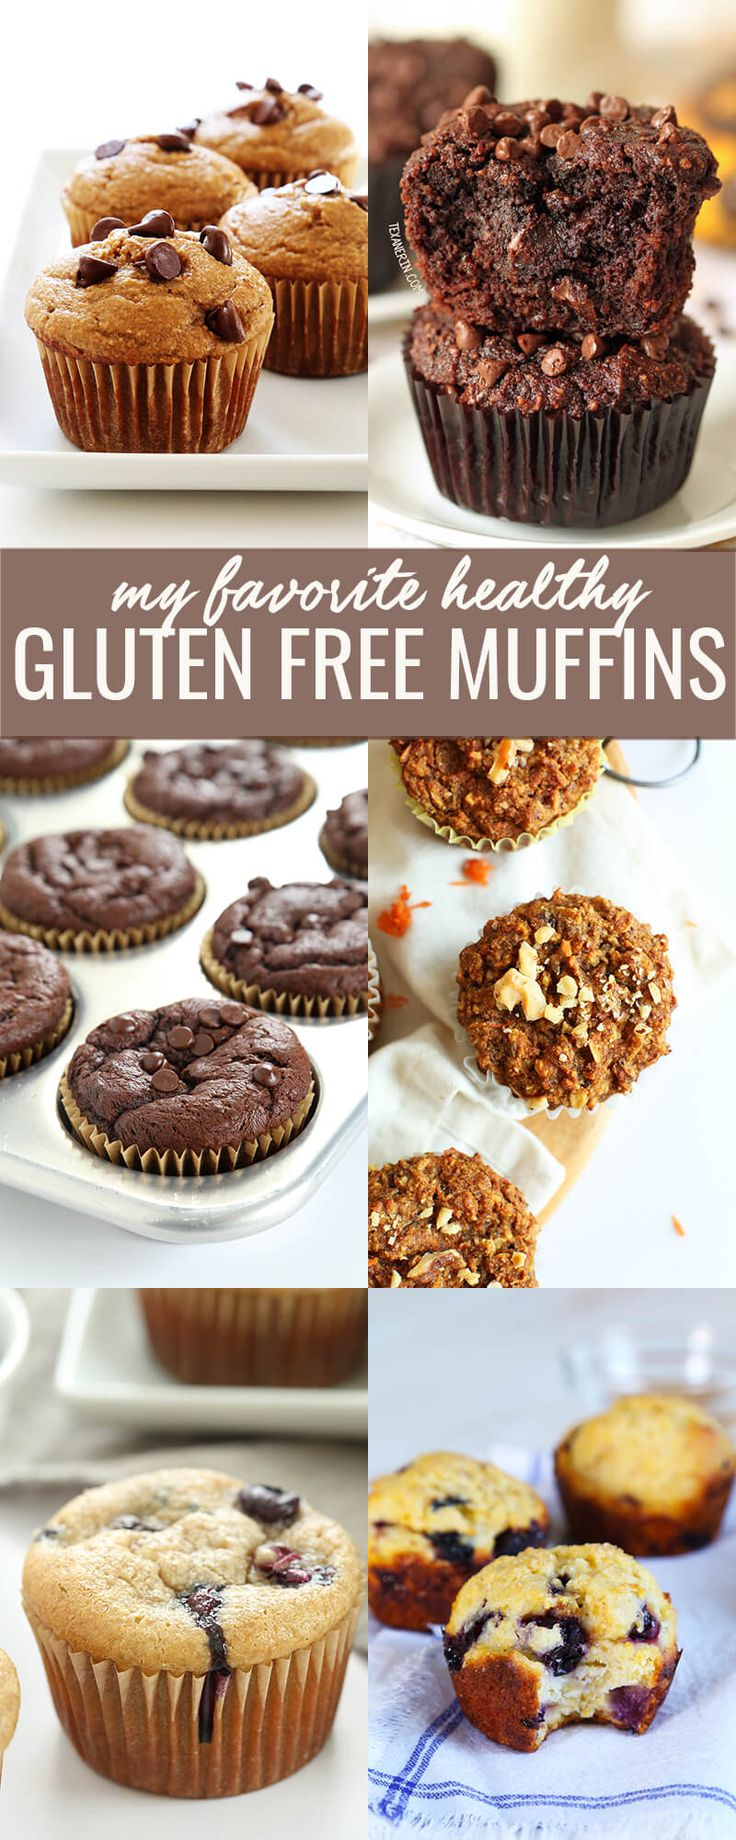 10 gluten free muffins, for everything from blueberry and banana to chocolate and chocolate chip—even Paleo or vegan. We've taken the classic breakfast muffin and made it into a truly healthy gluten free breakfast! http://glutenfreeonashoestring.com/